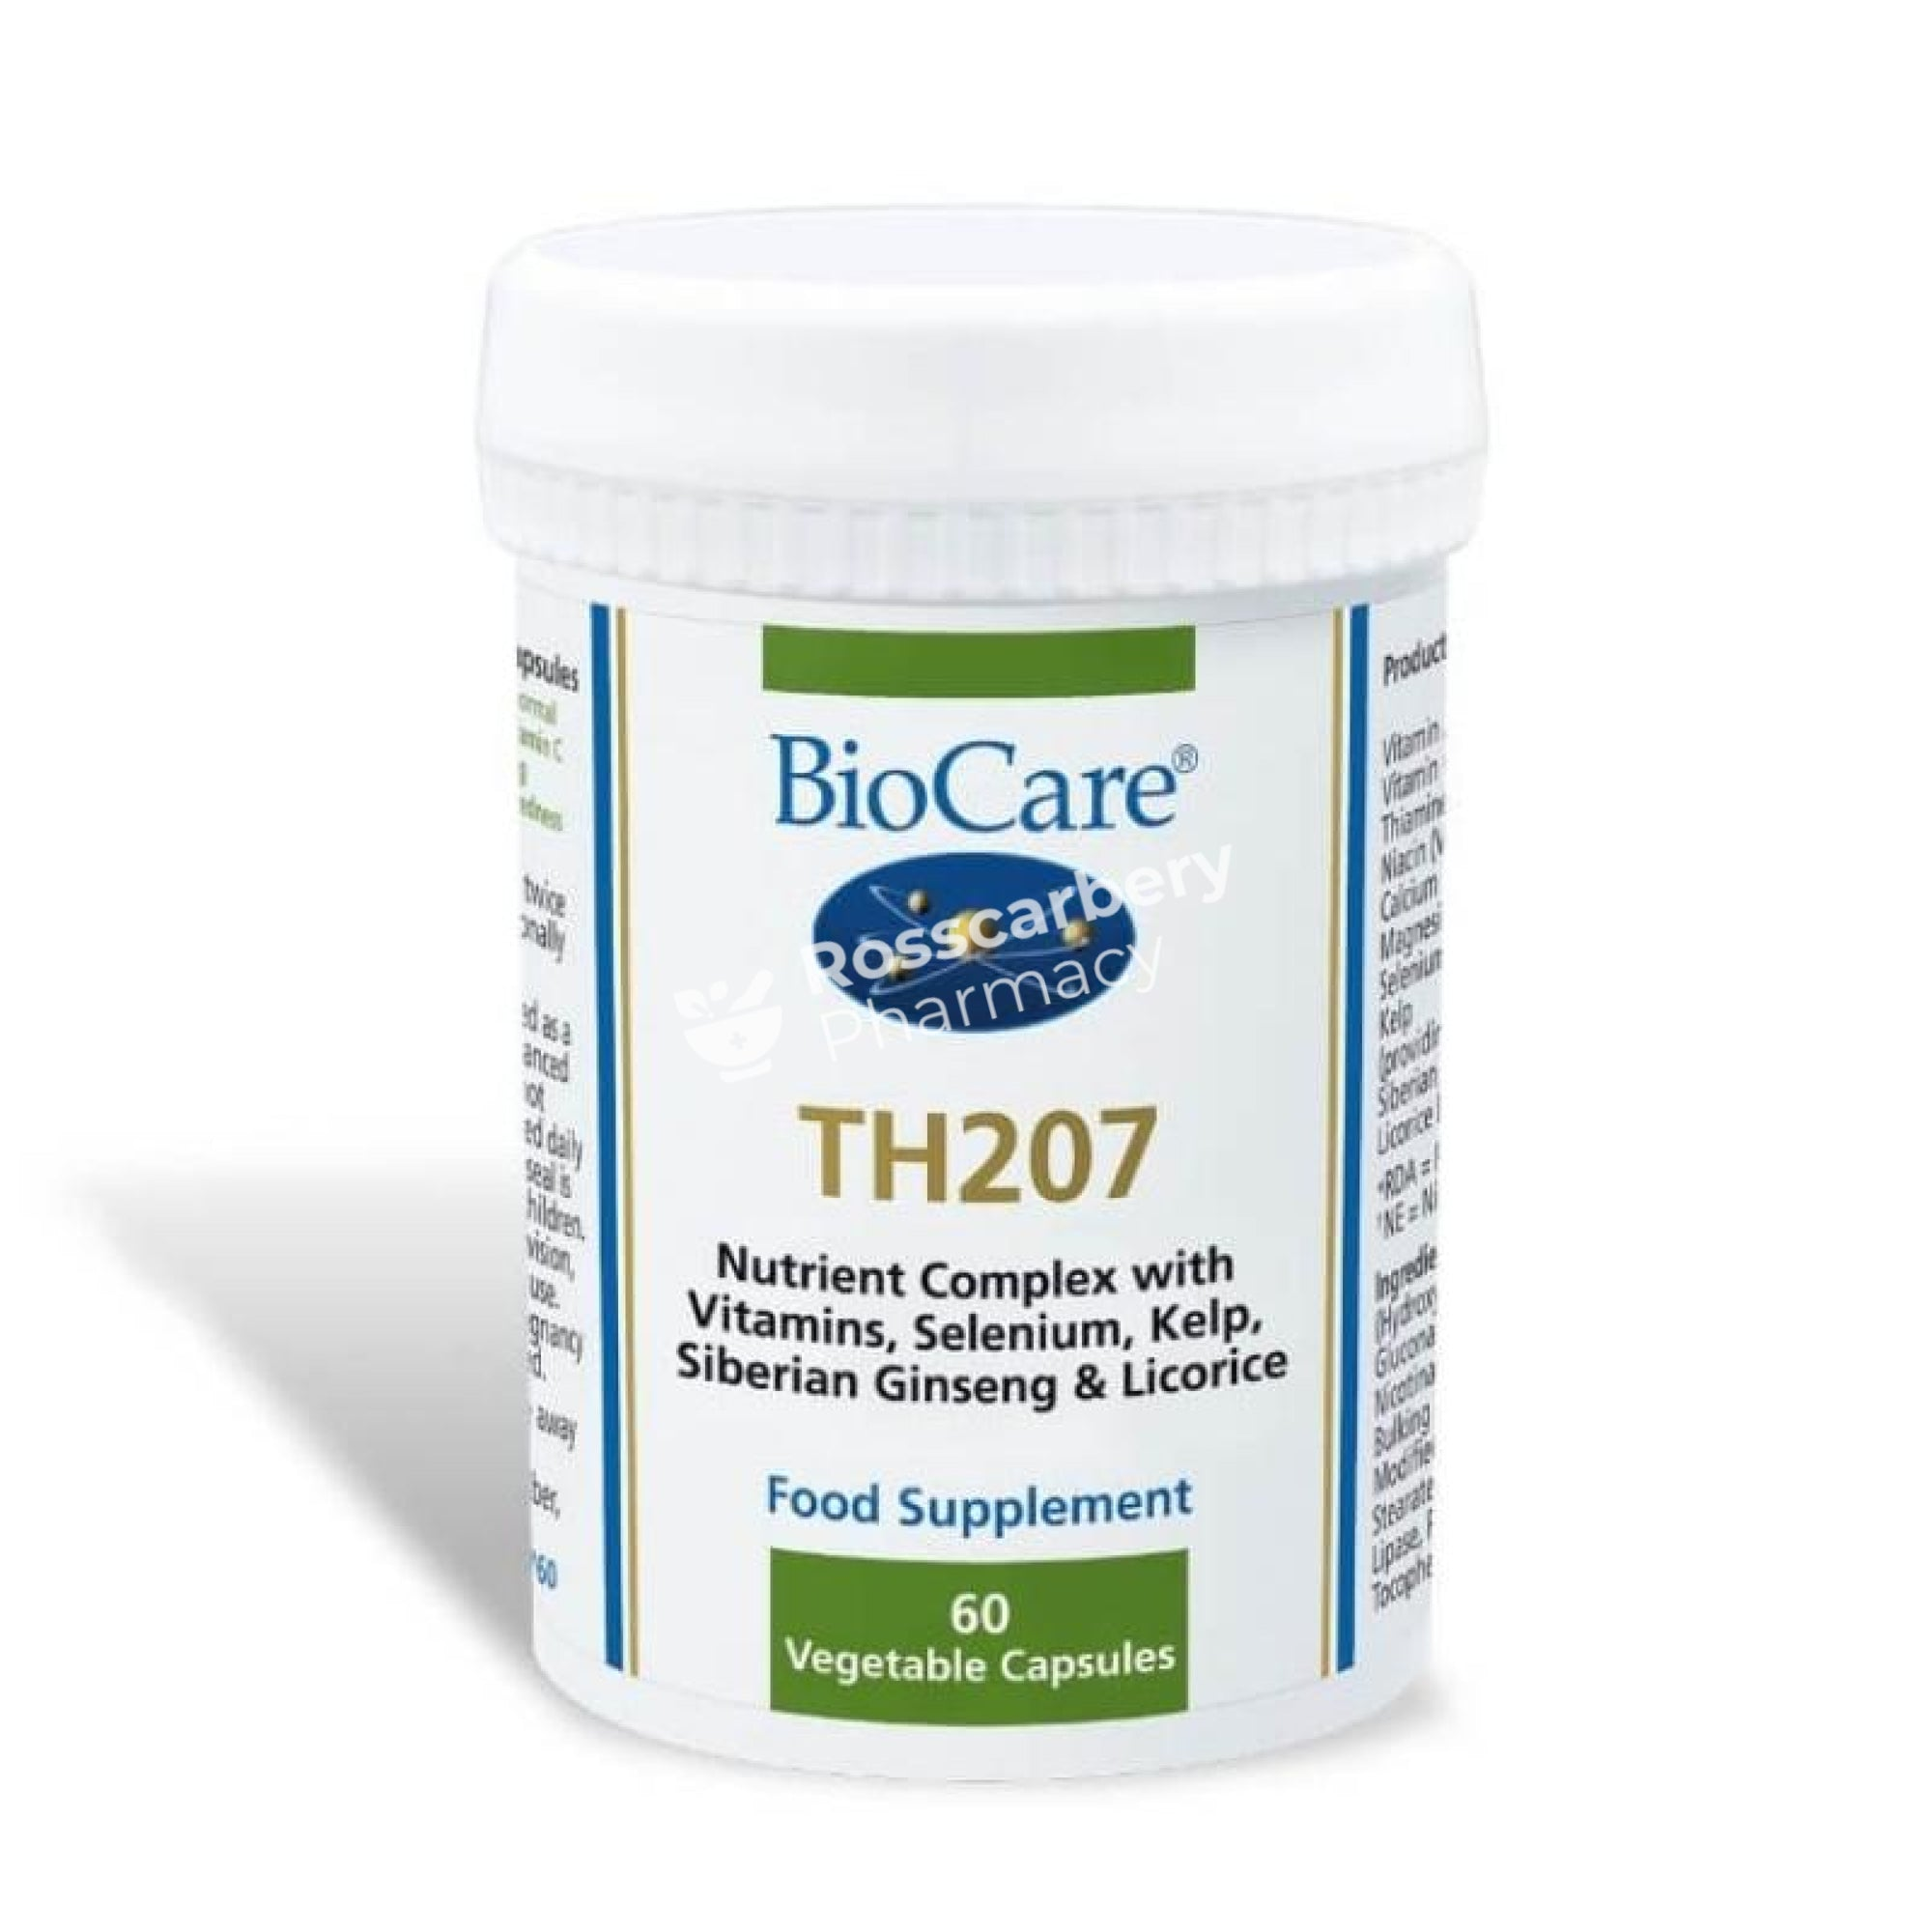 Biocare Th207 Energy & Wellbeing